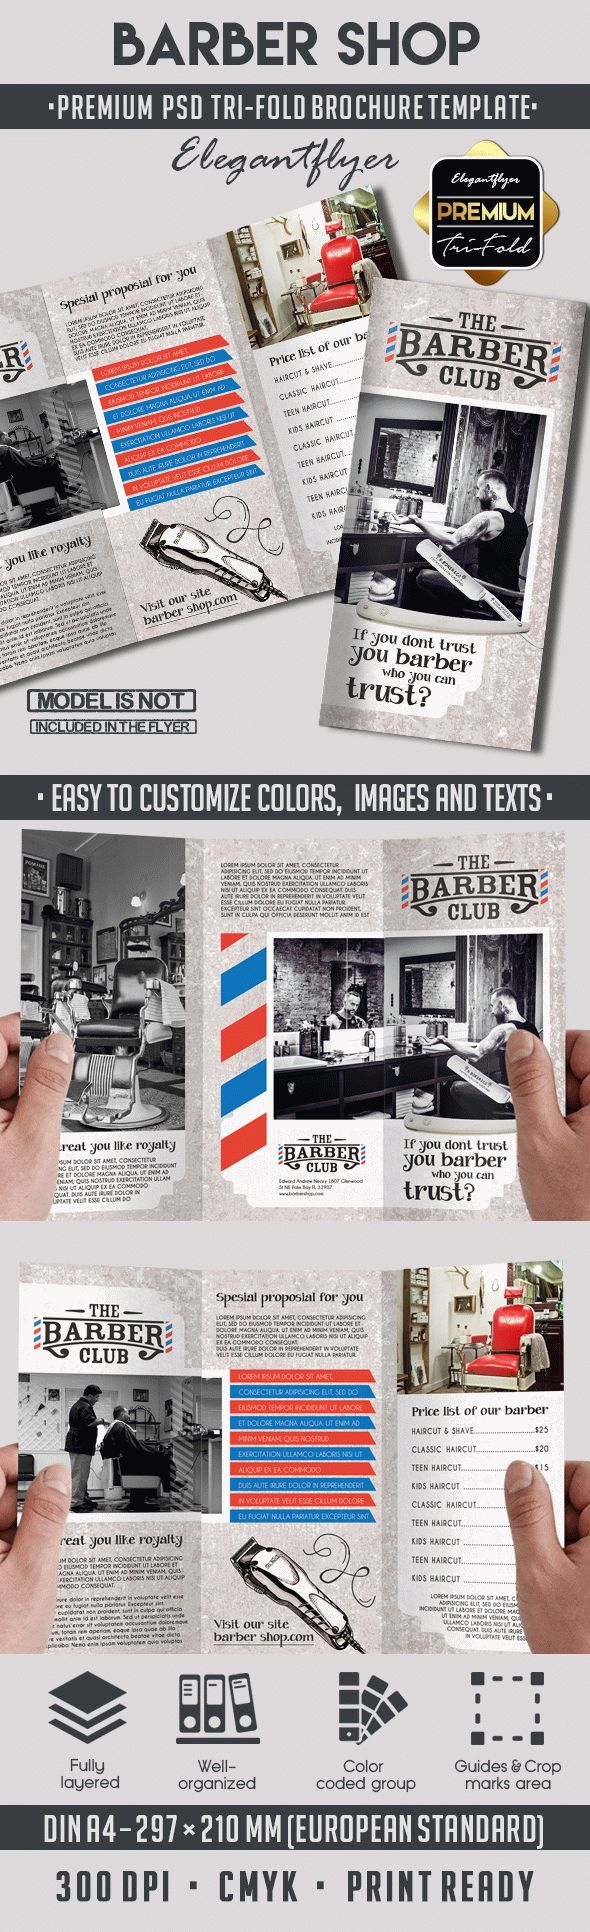 The Barber Club Tri-Fold Brochure